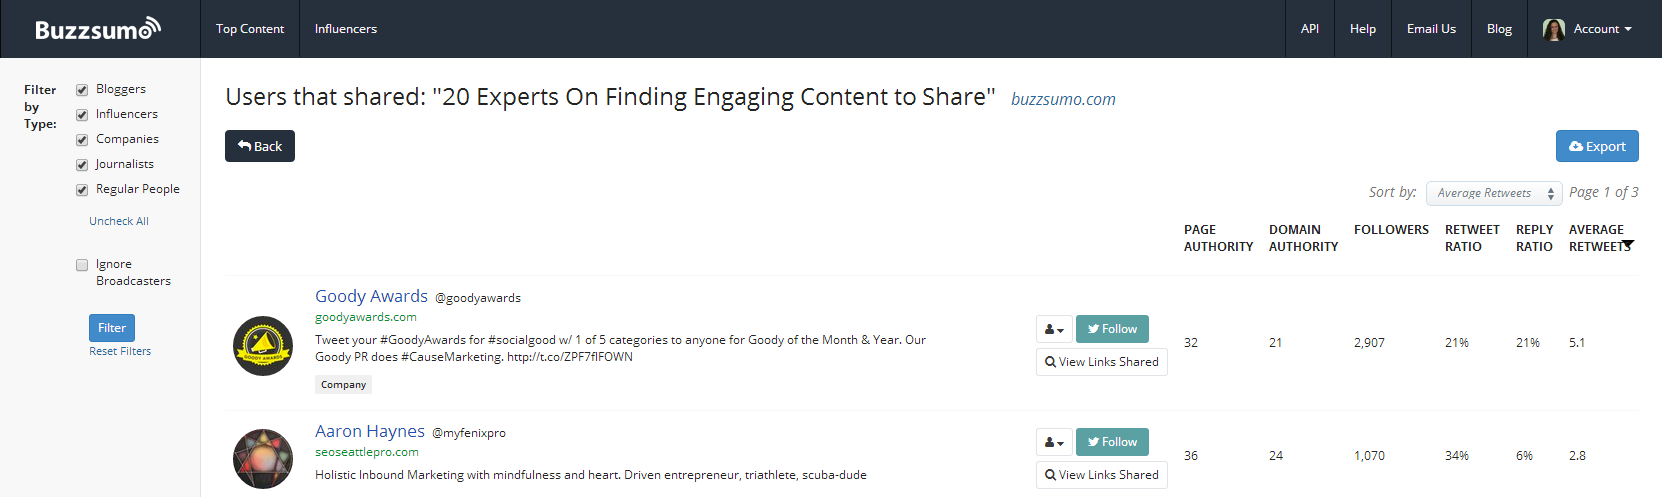 buzzsumo top content search